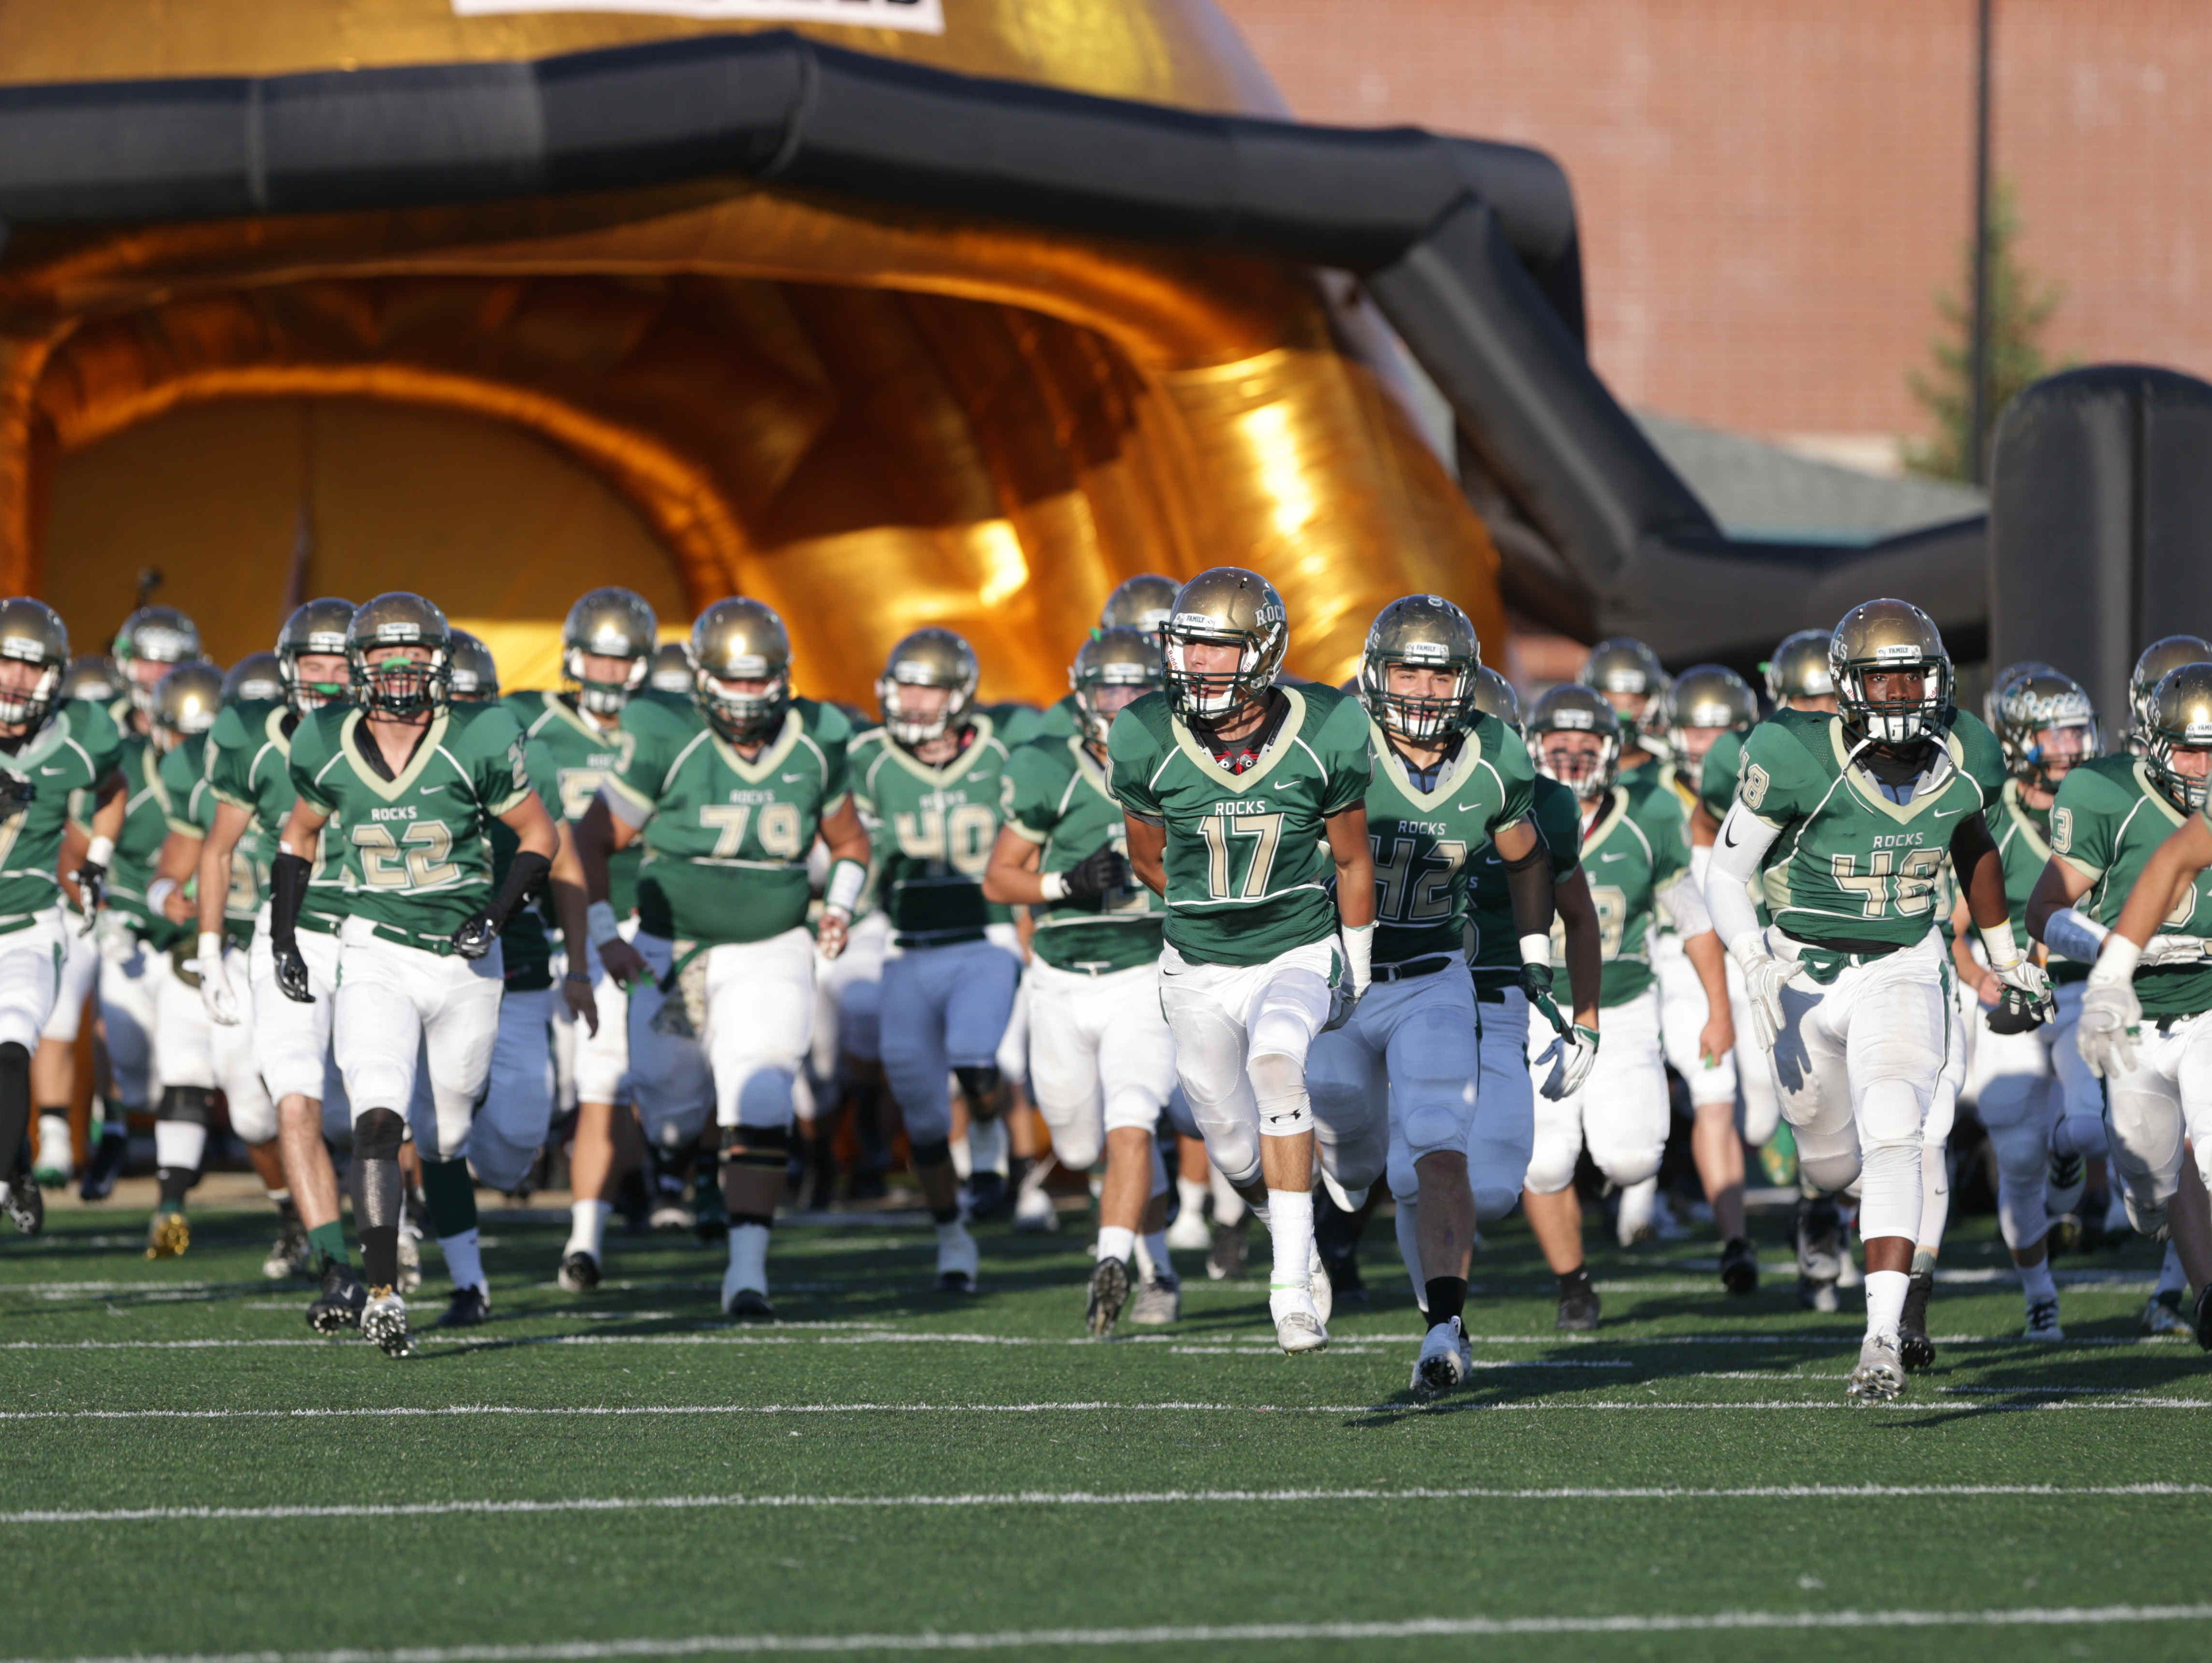 Westfield is off to a 4-0 start and host 6A Hamilton Southeastern on Friday.